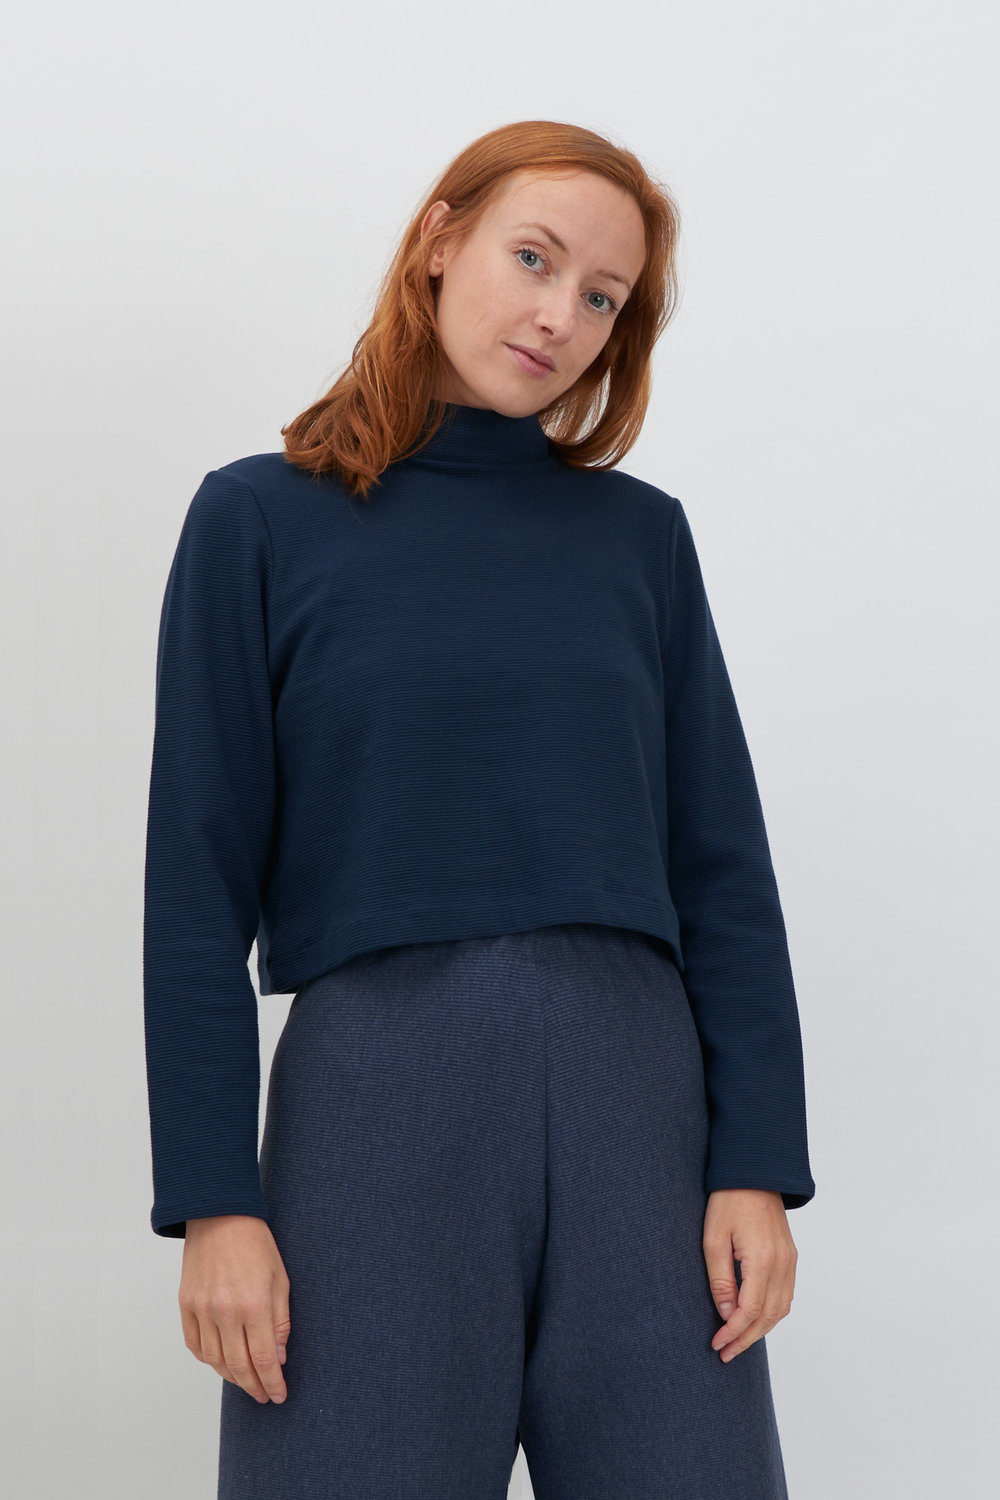 Sweater-Navy-Front-ZOOM.jpg